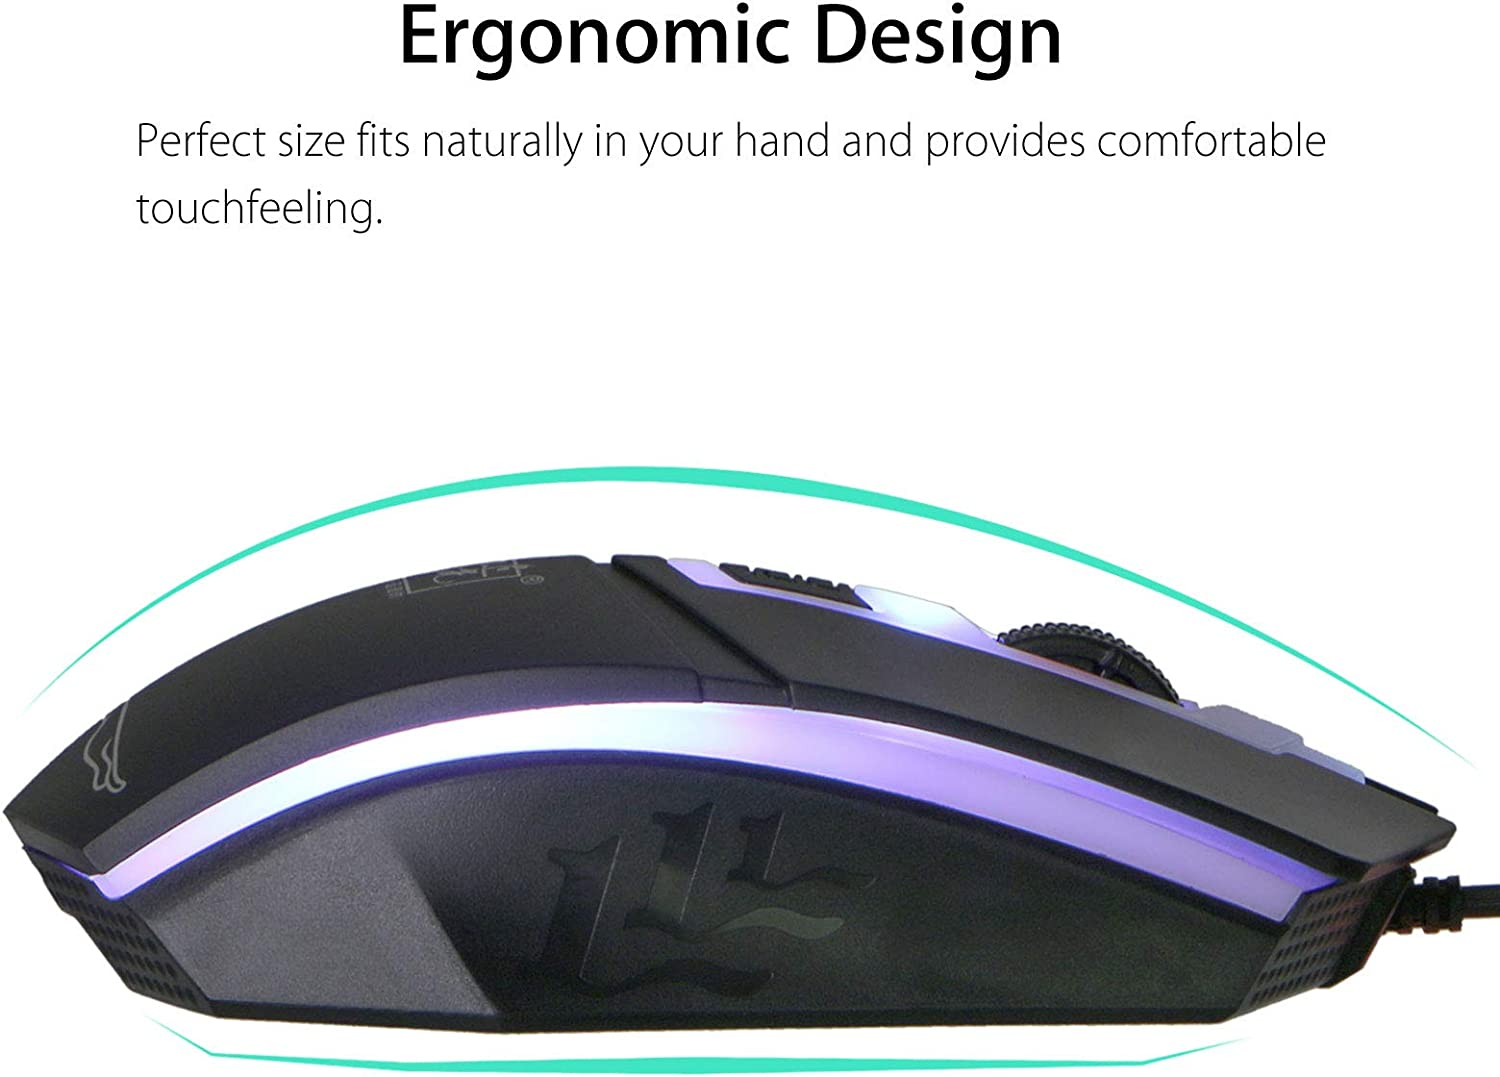 Wired Ergonomic Gaming LED Keyboard and Mouse Multiple Color Rainbow LED Backlit Mechanical Feeling USB Wired Gaming Keyboard and Mouse Combo for Working or Gaming